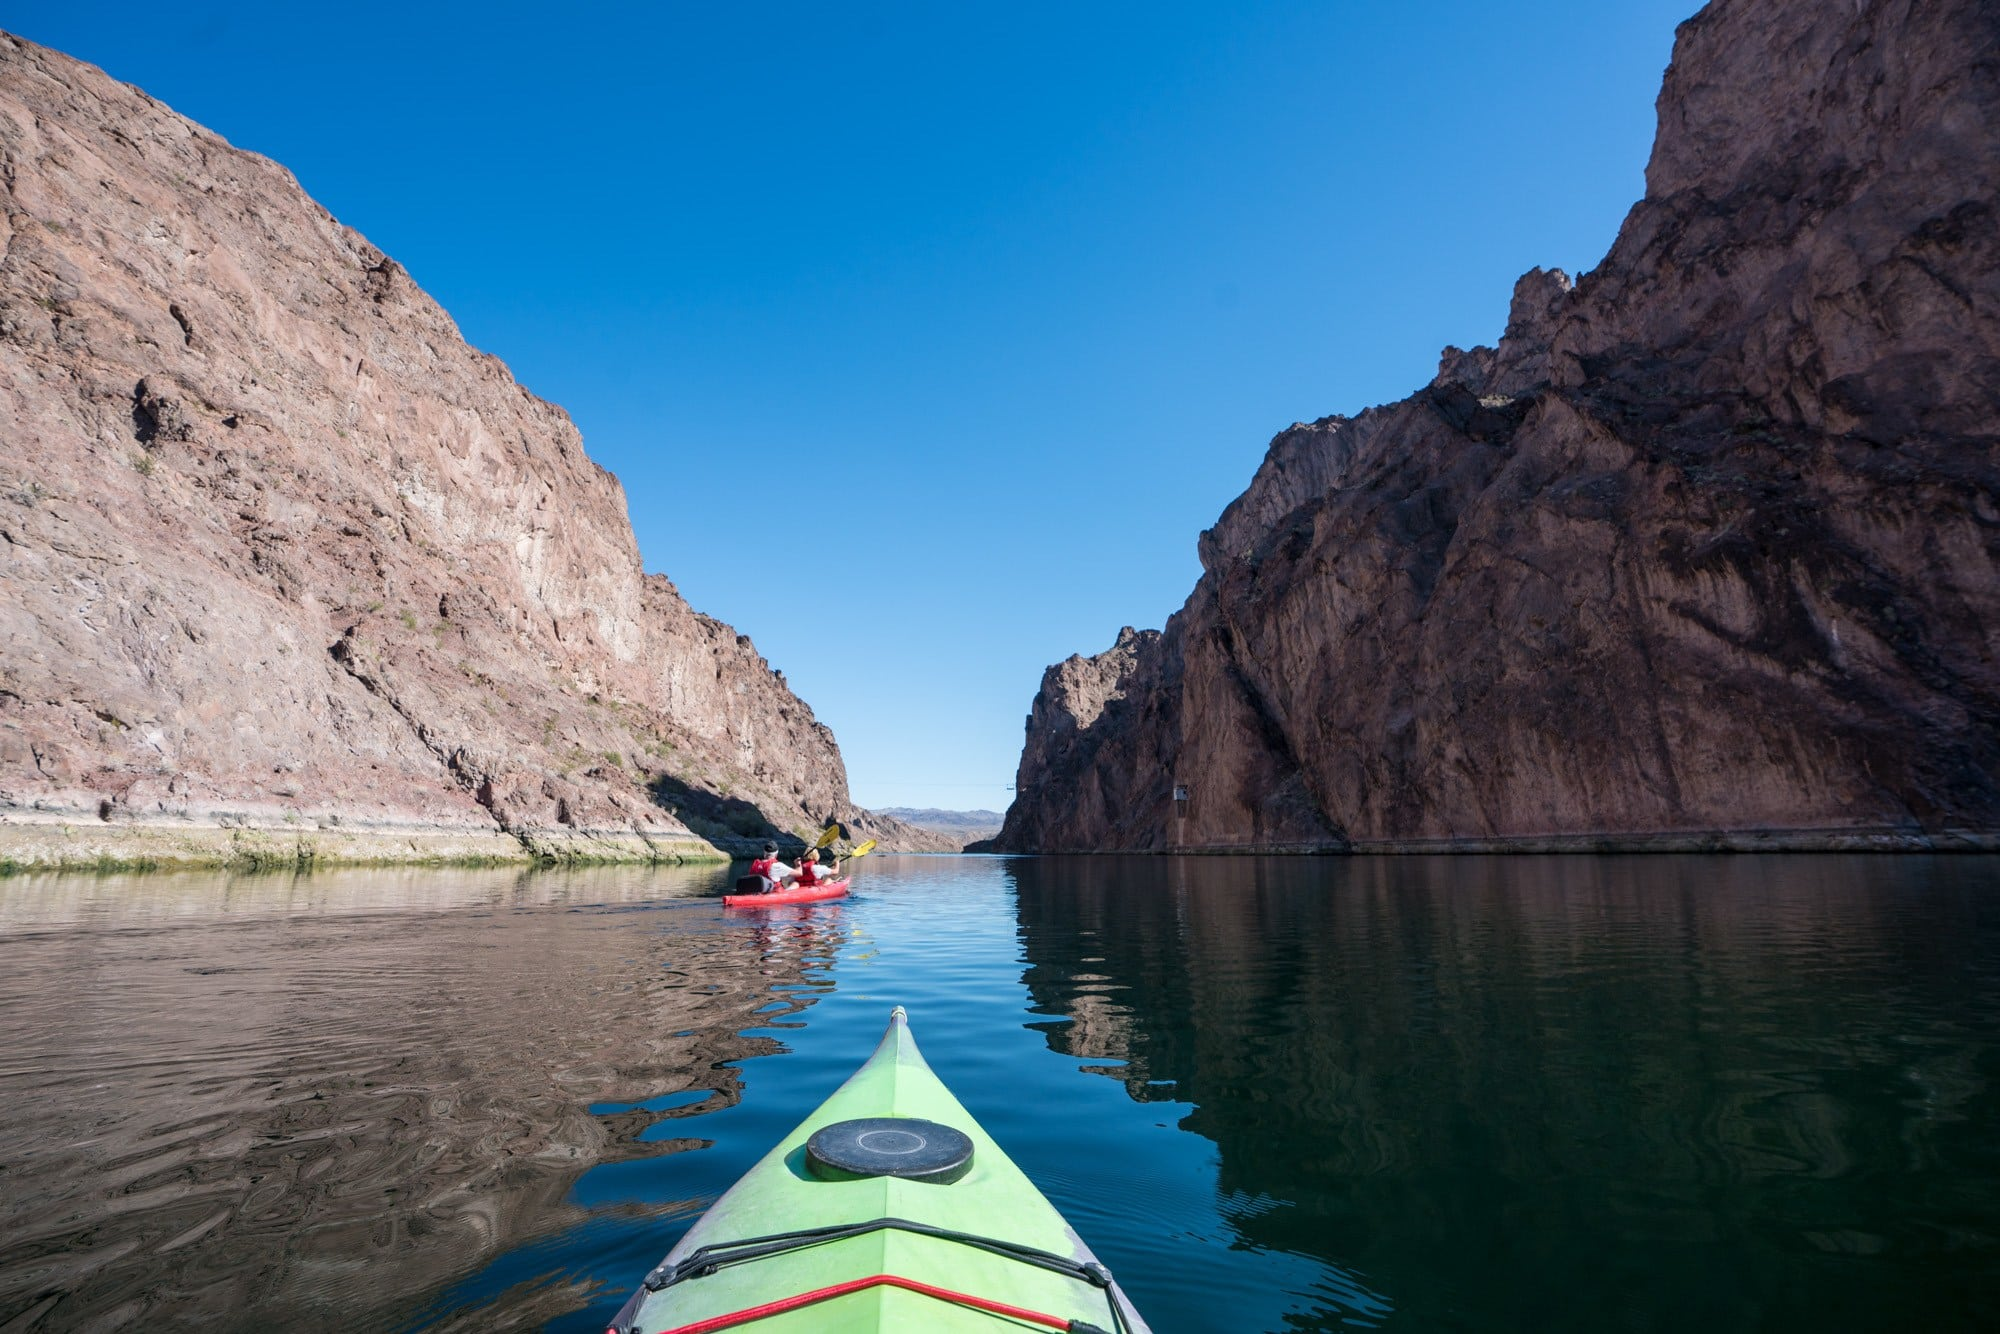 Black Canyon Water Trail // Visit 12 of the best Nevada road trip stops, from the top state parks to hot springs, ghost towns & trails where you'll find solitude and amazing landscapes